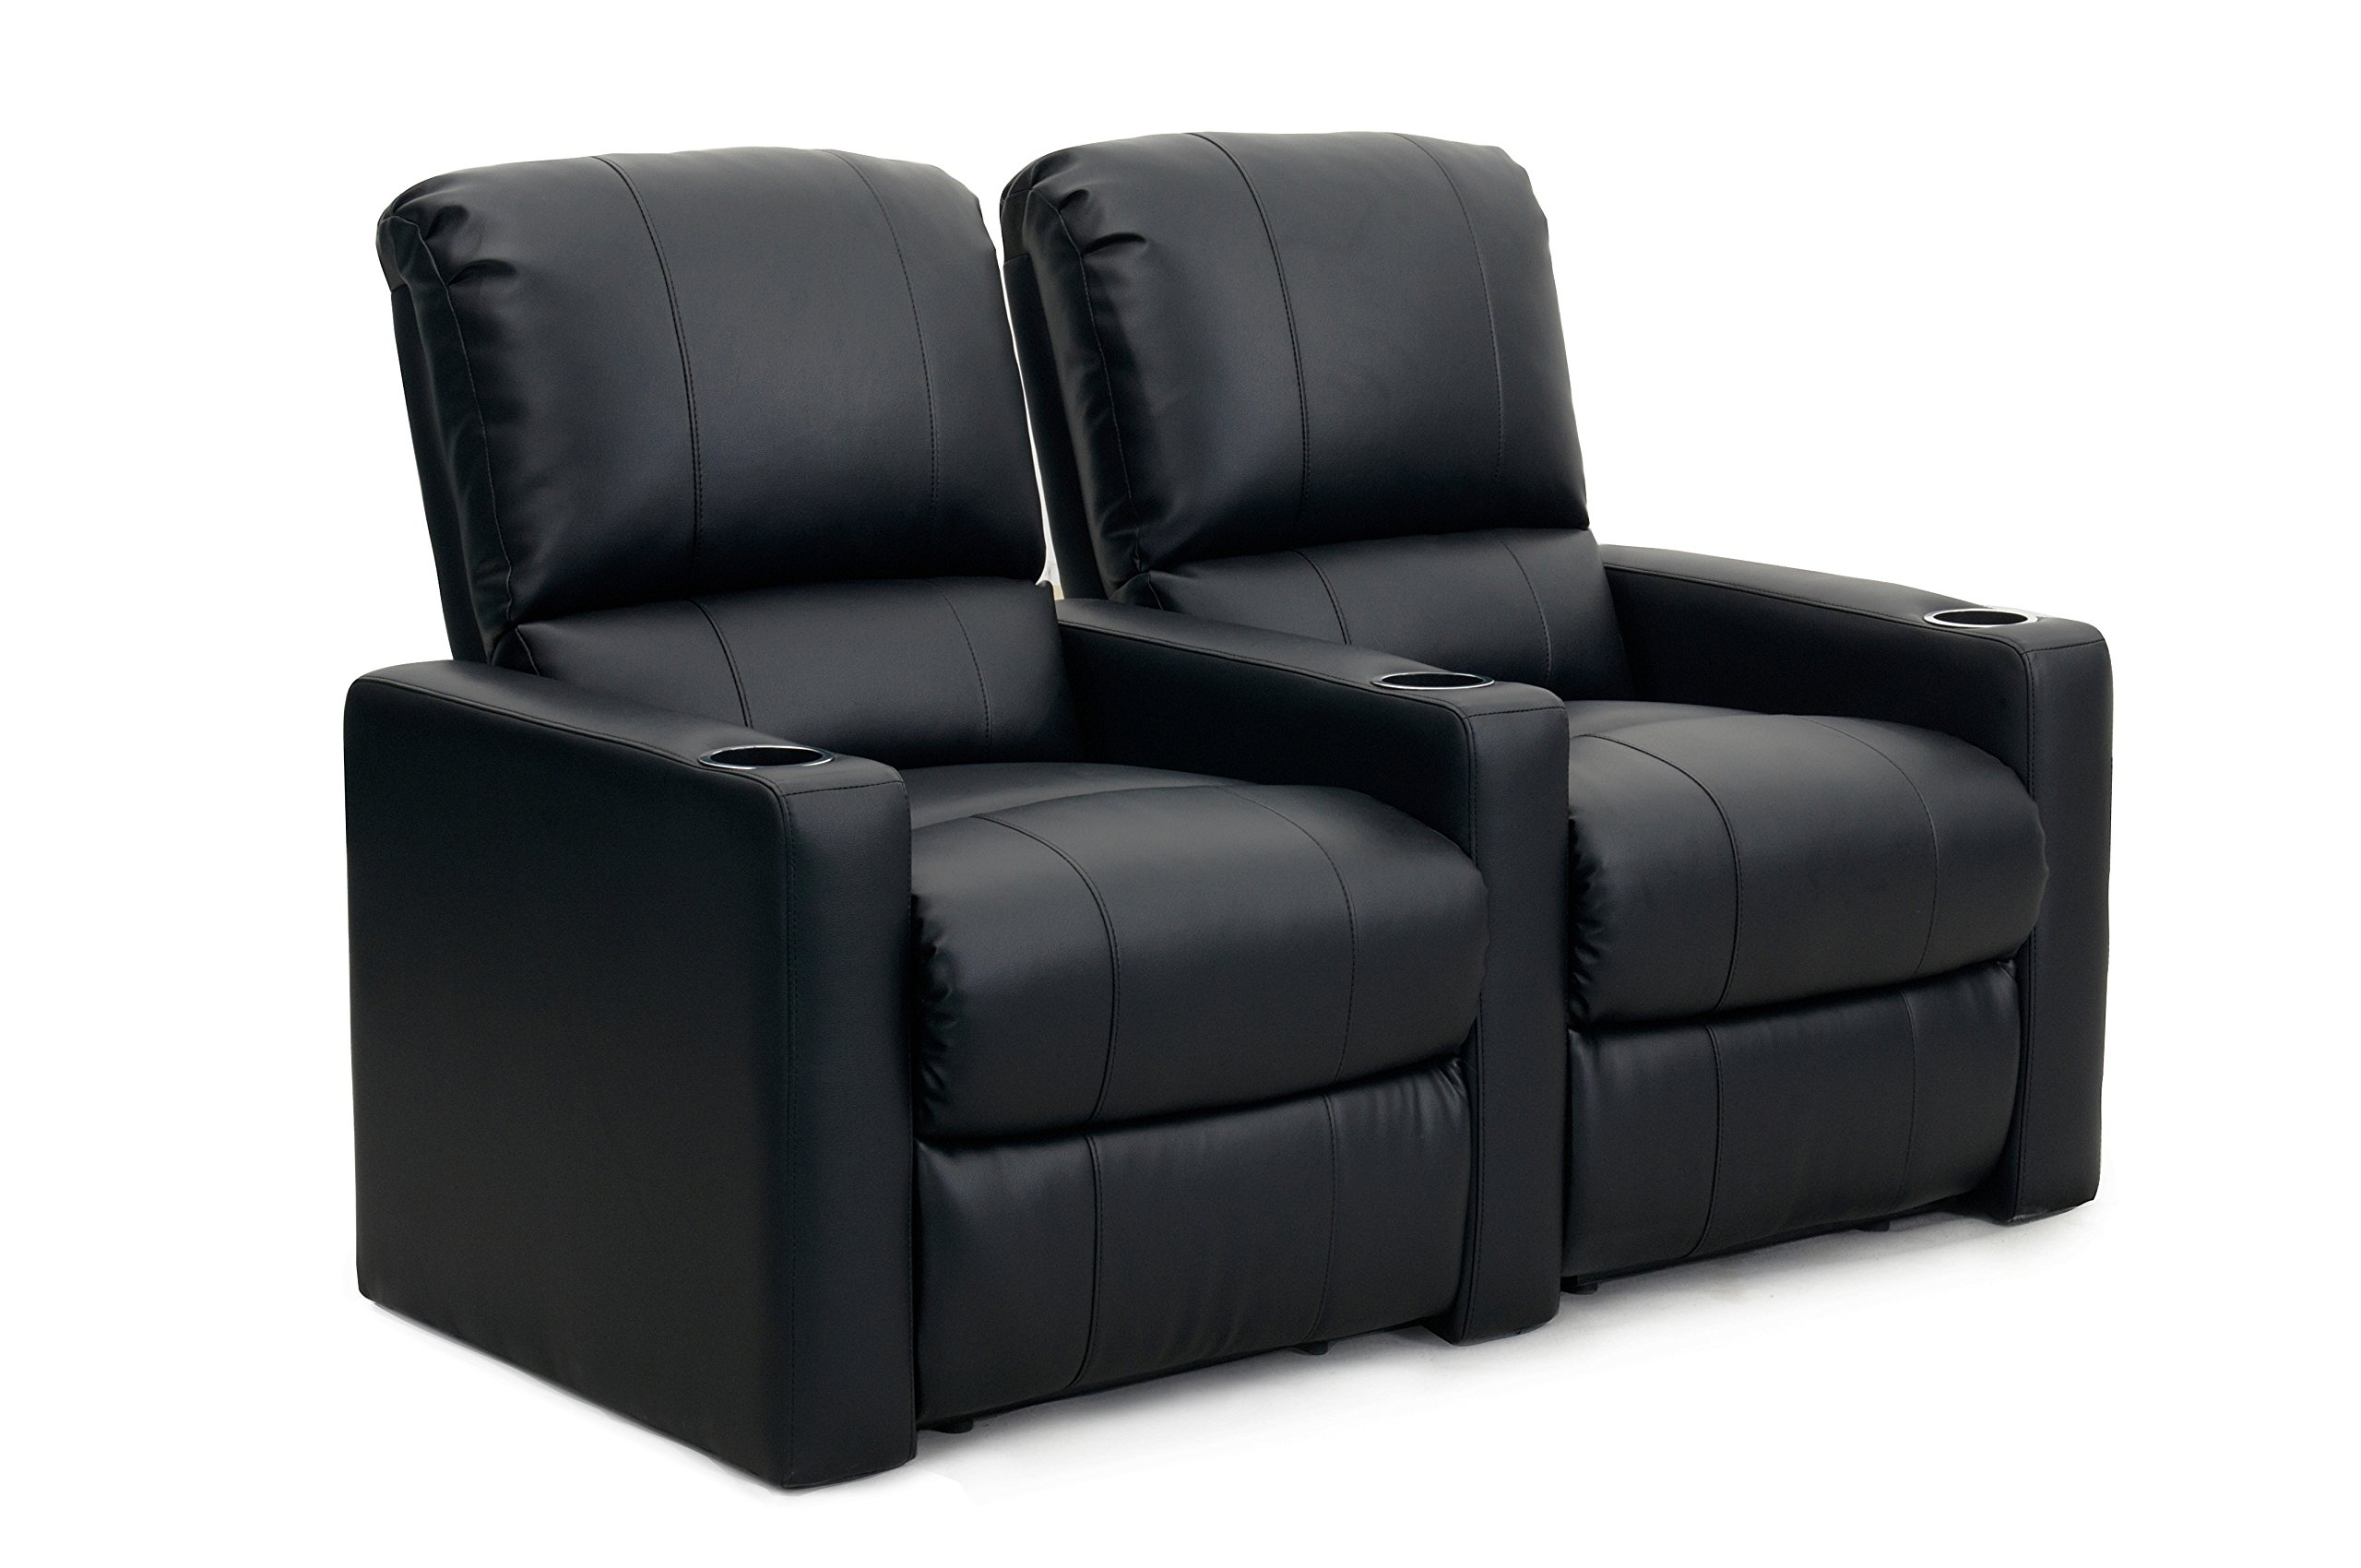 Octane Seating CHARGER-R2SM-BND-BL Octane Charger XS300 Leather Home Theater Recliner Set (Row of 2), Black by Octane Seating